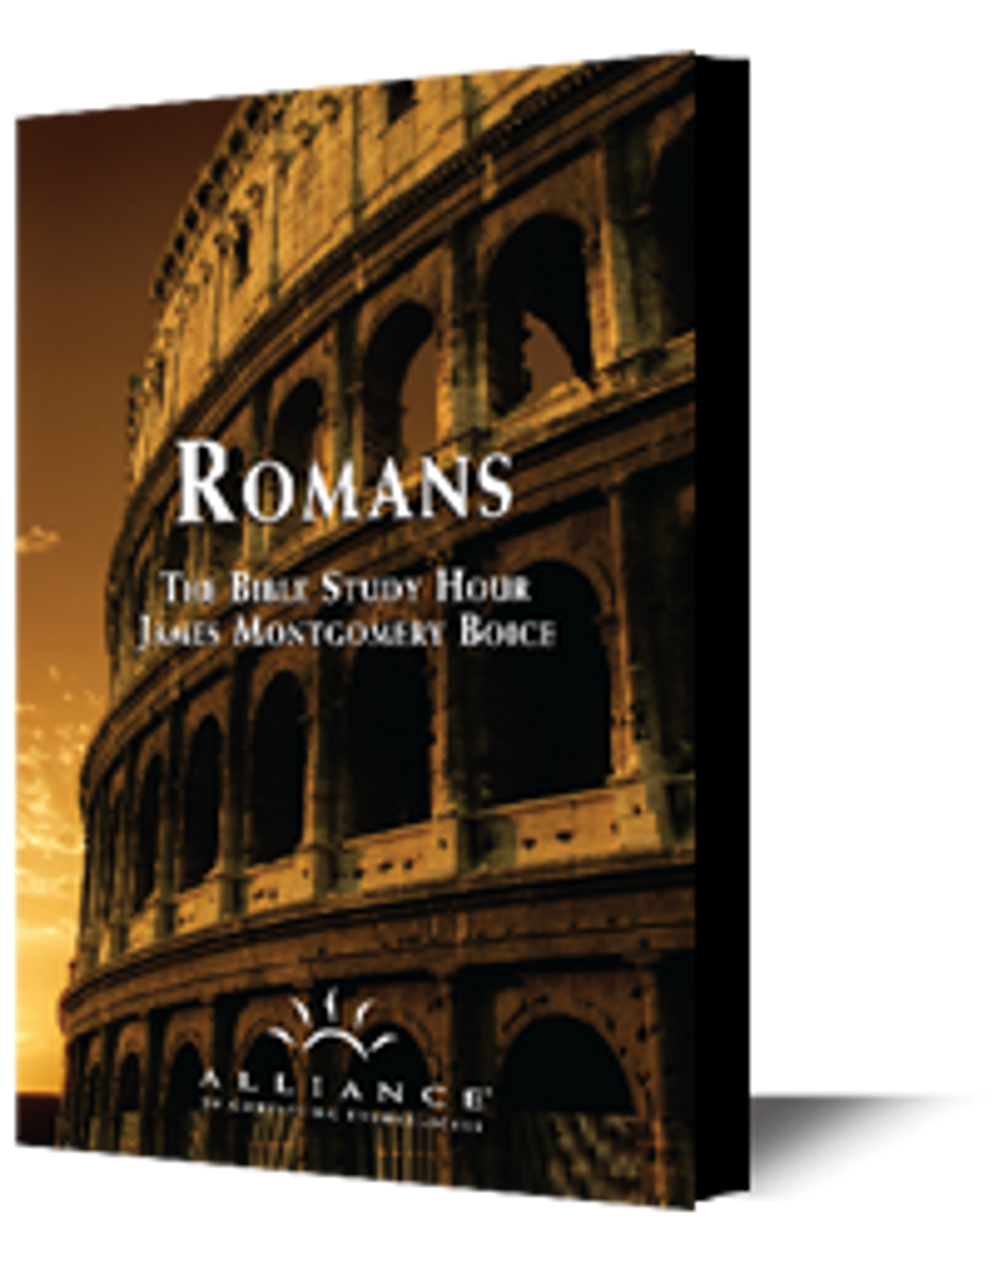 Romans, Volume 6: Amazing Grace (Boice) (mp3 downloads)